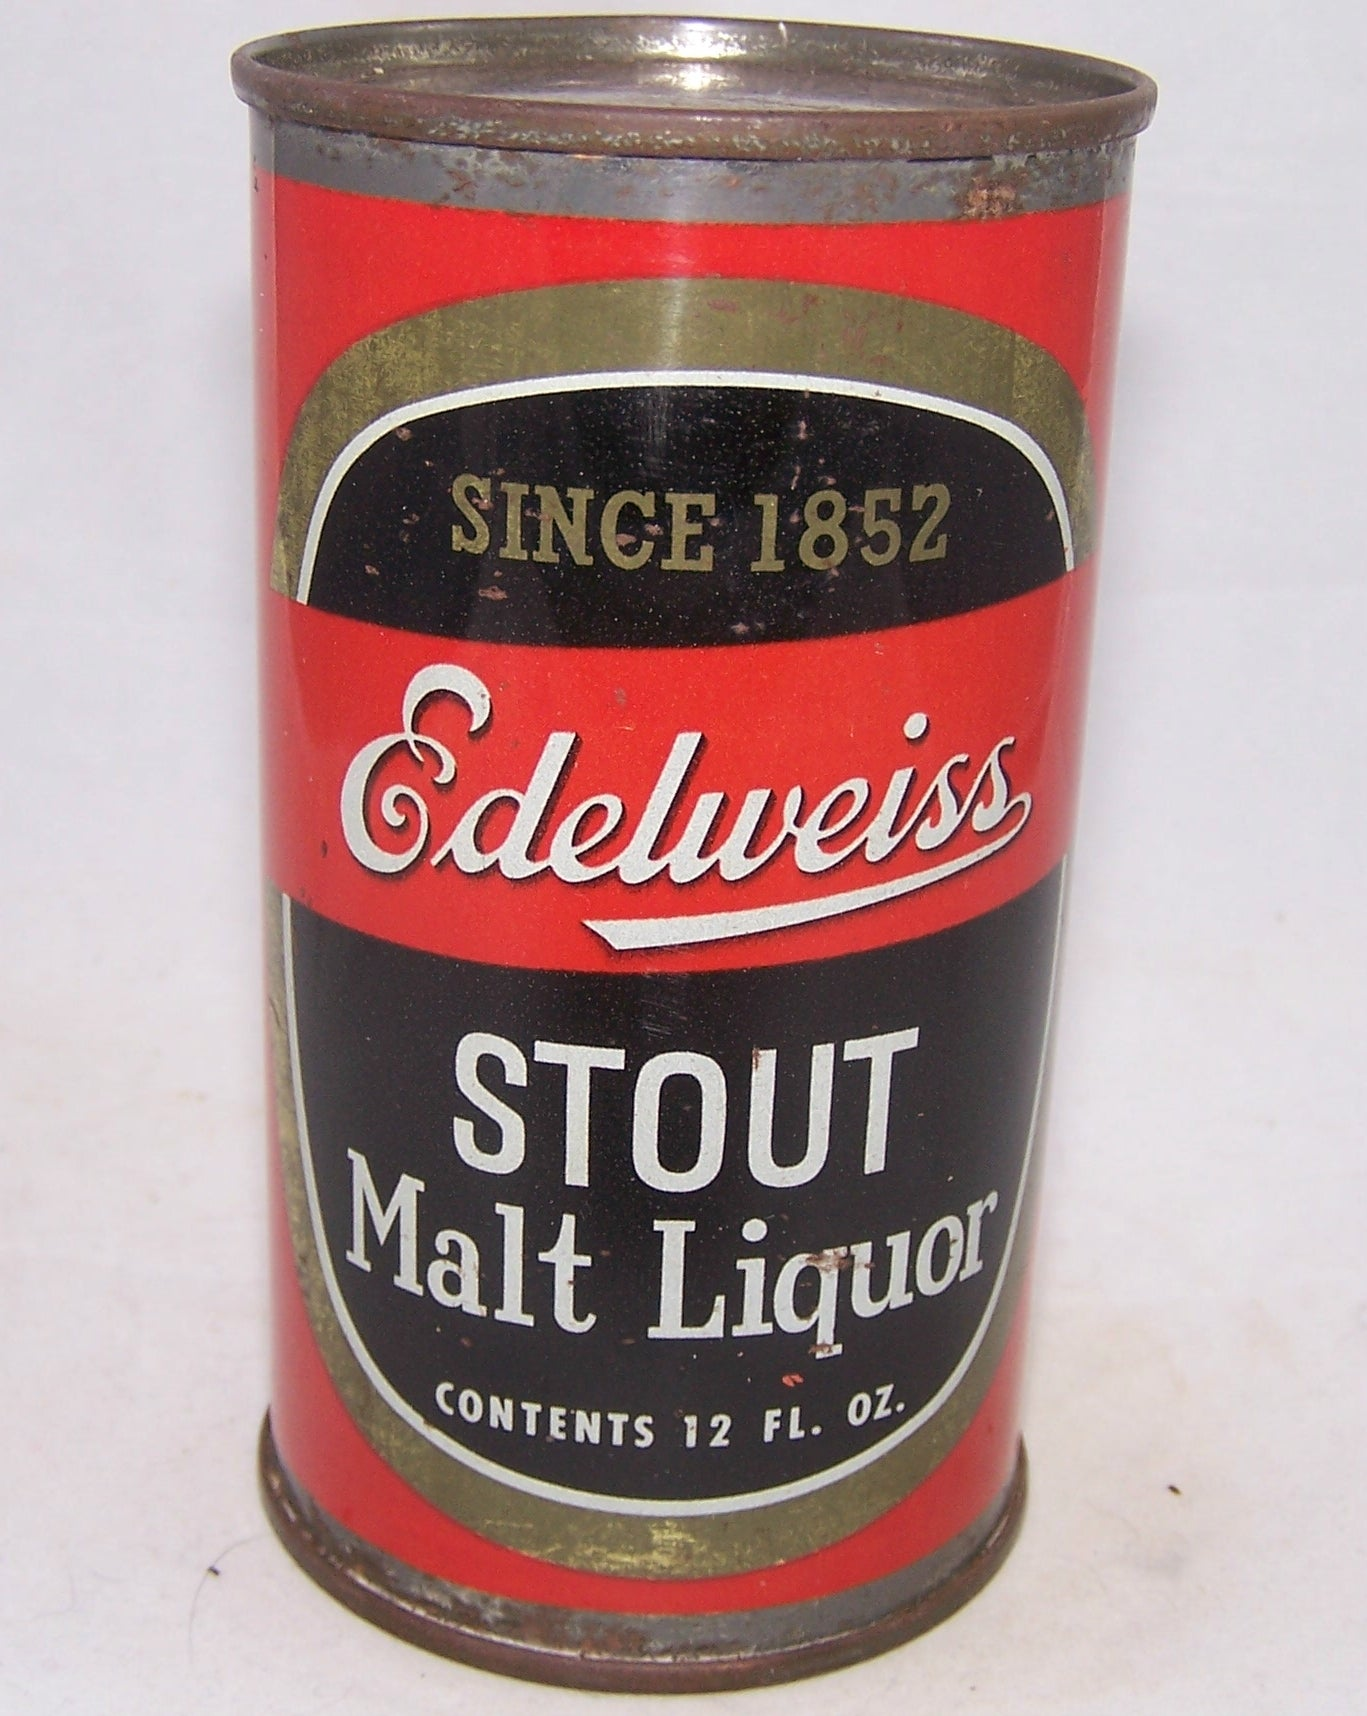 Edelweiss Stout Malt Liquor, USBC 59-10, Grade 1-  Sold on 04/06/18